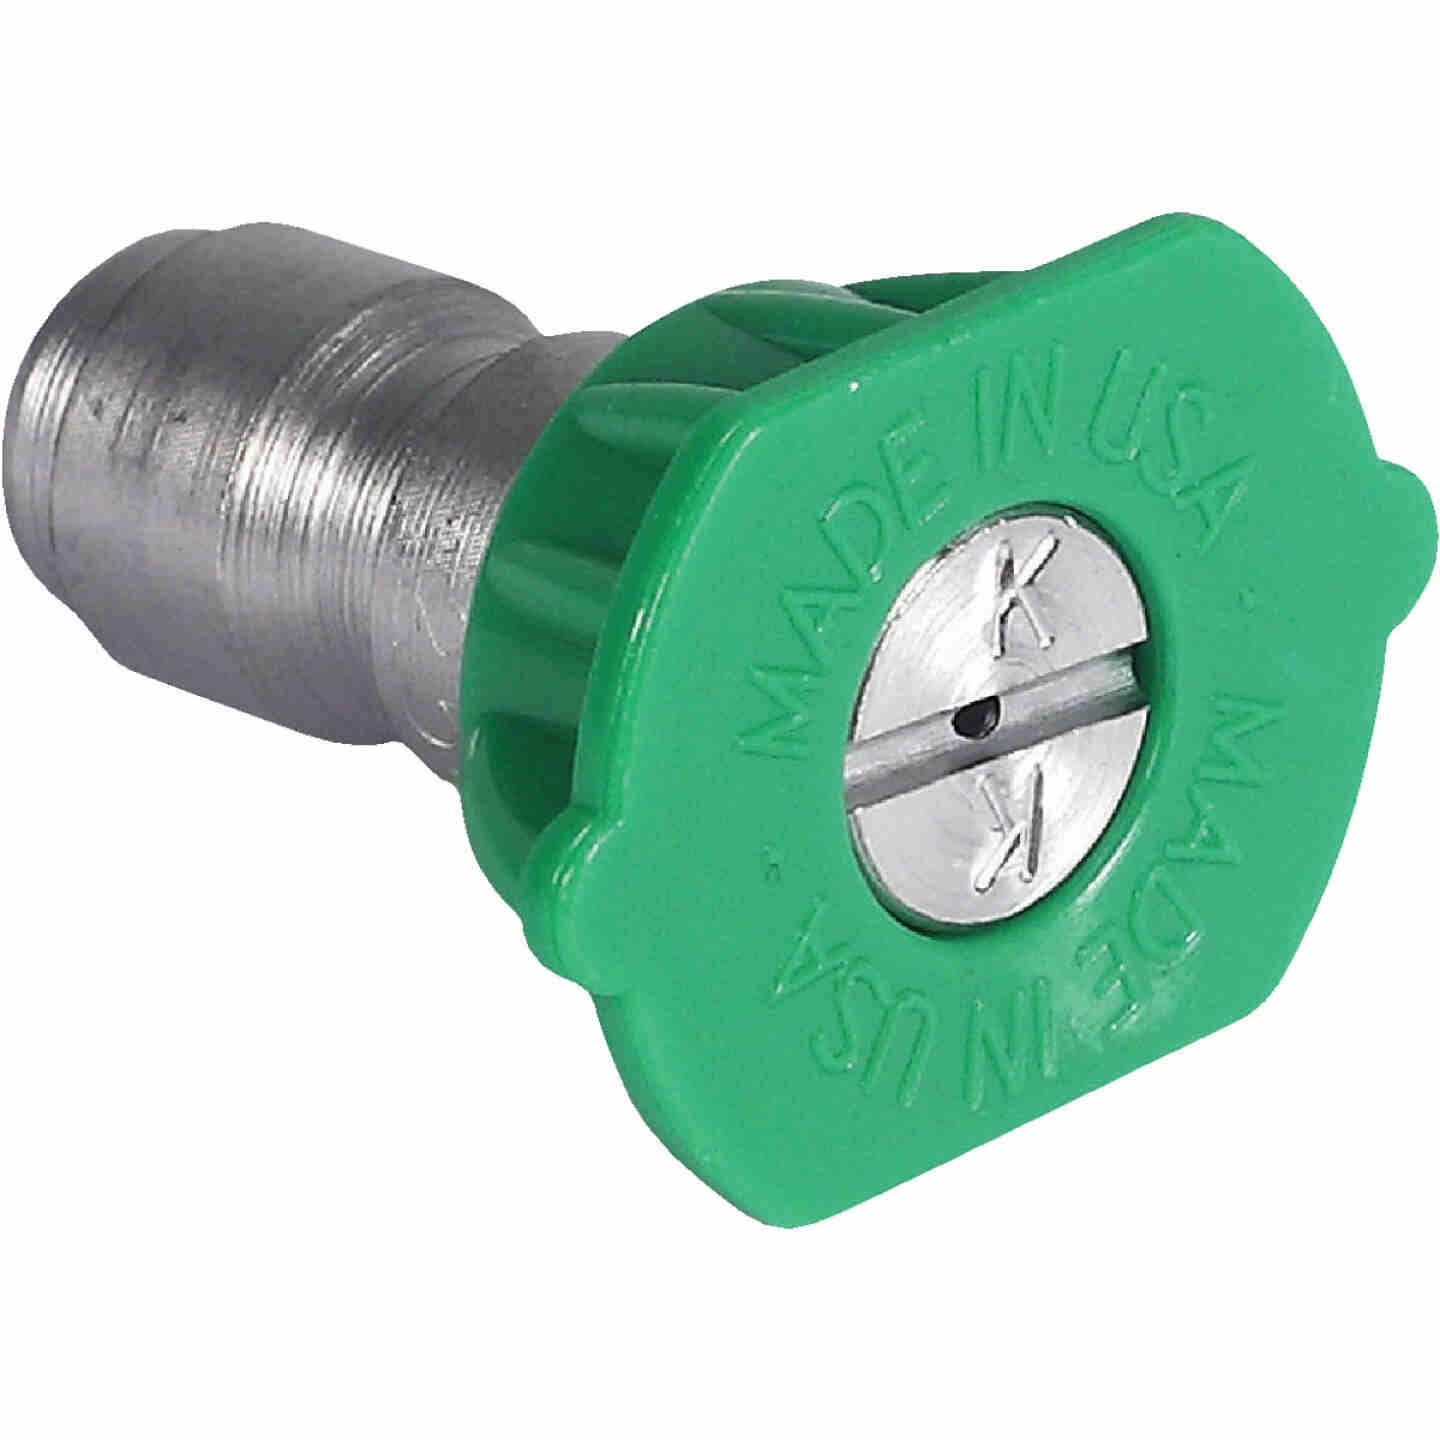 Mi-T-M 3.0mm 25 Degree Green Pressure Washer Spray Tip Image 1